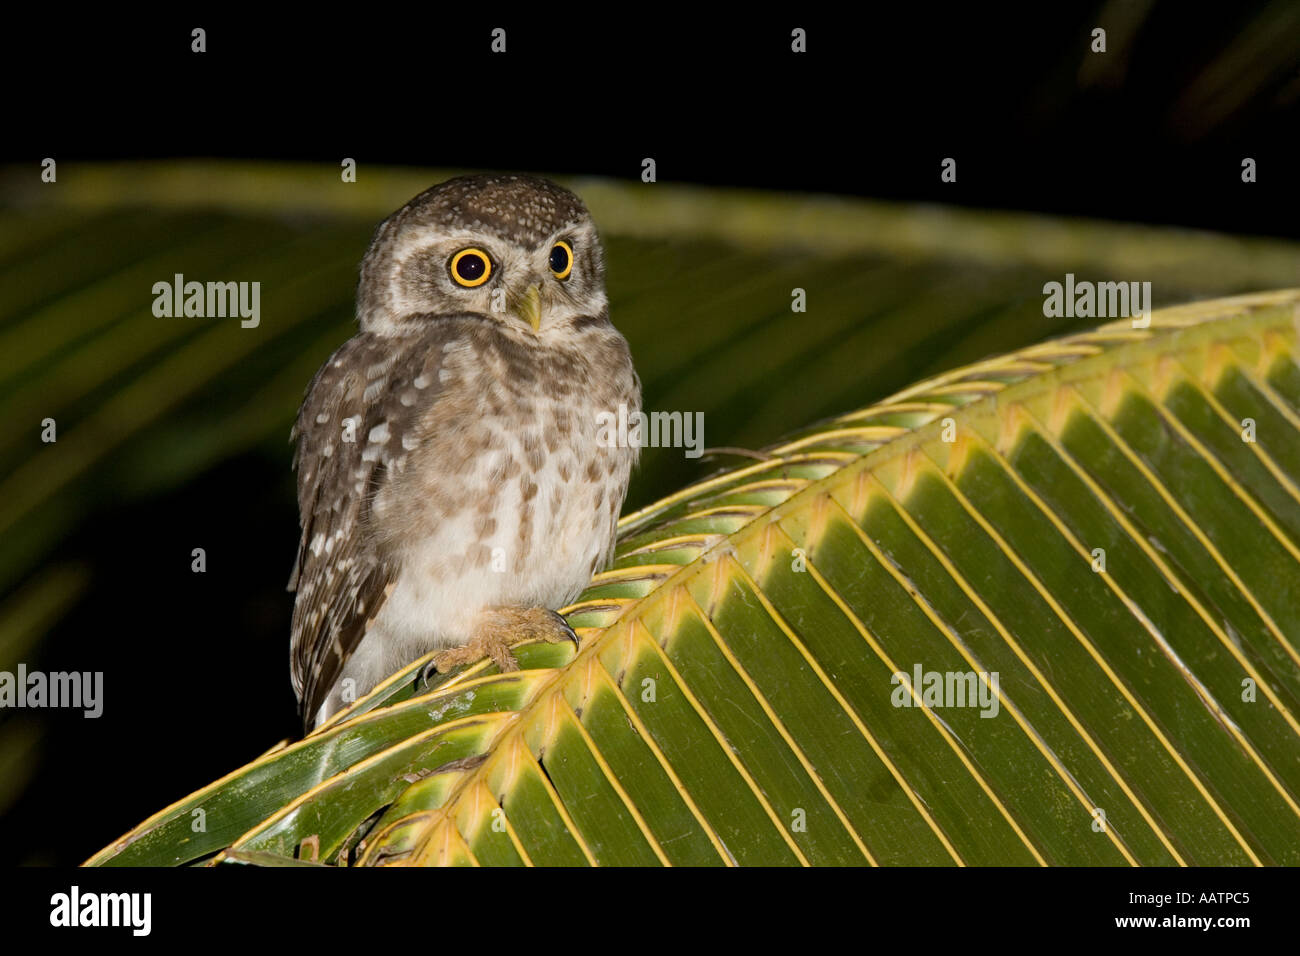 Spotted Owlet on palm frond Baga Fields Goa India - Stock Image